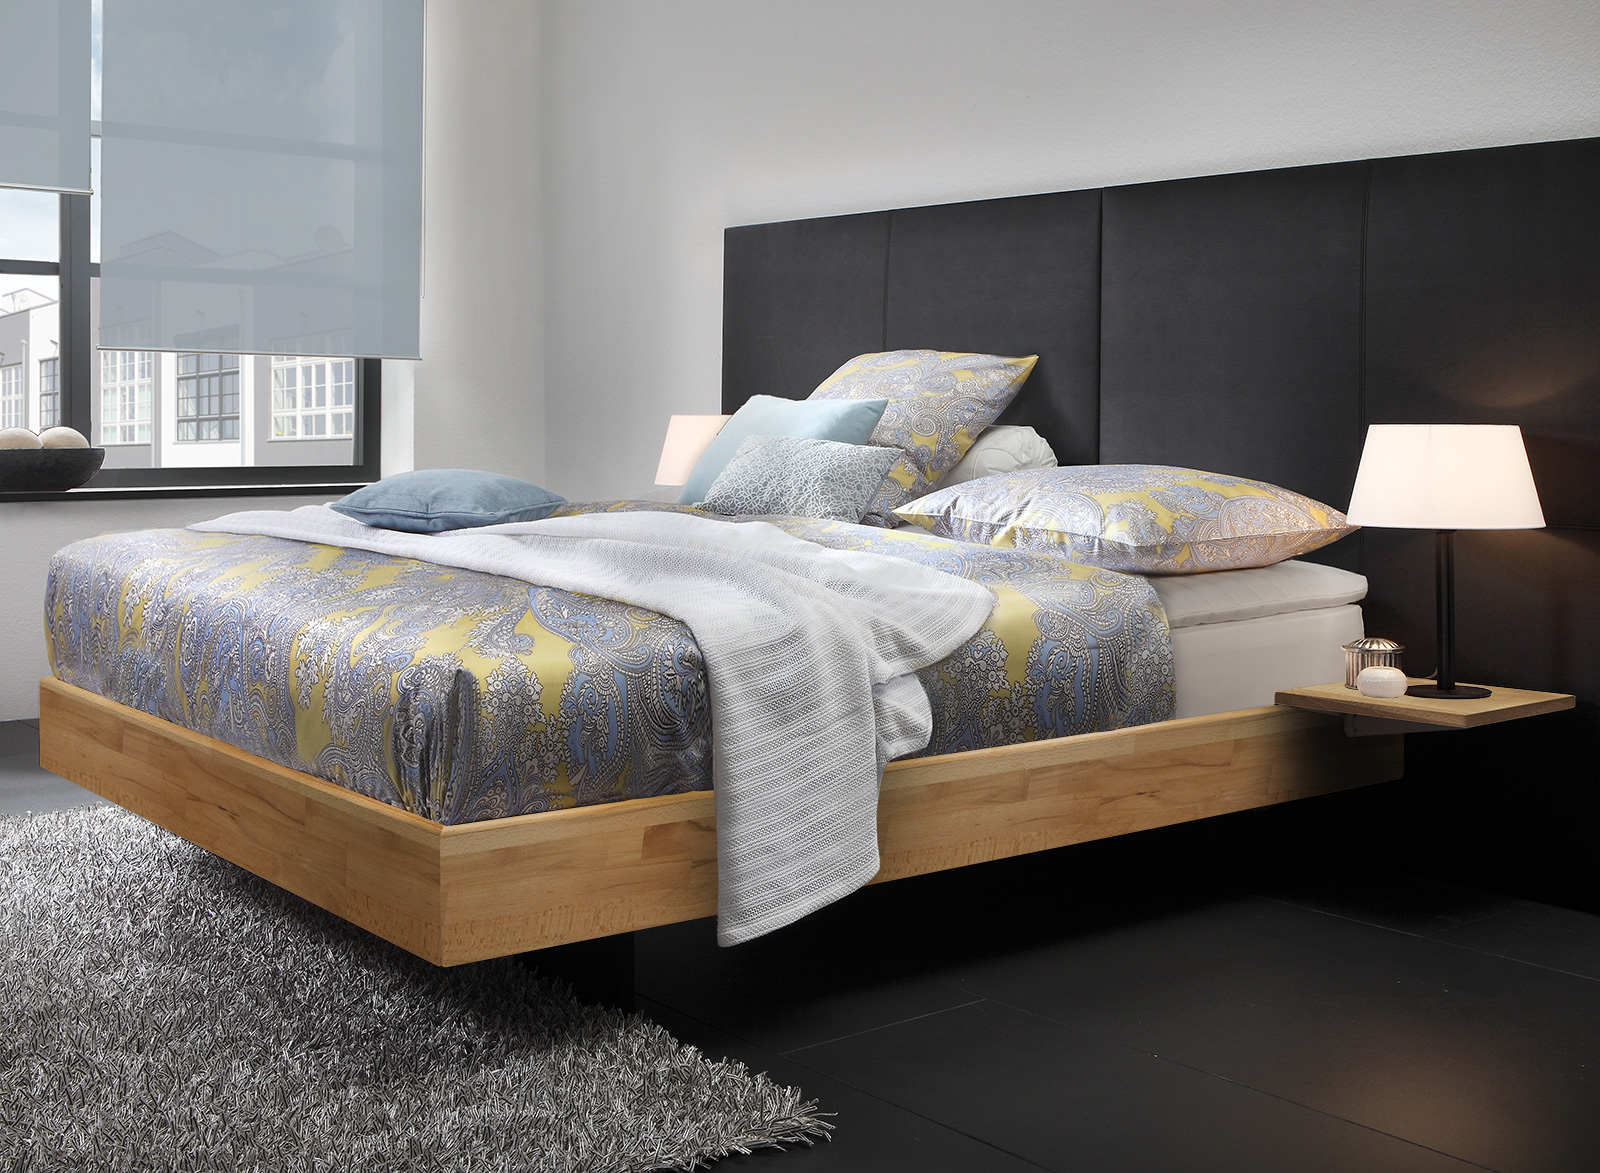 stiftung warentest betten stiftung warentest ruf betten download page beste stiftung warentest. Black Bedroom Furniture Sets. Home Design Ideas